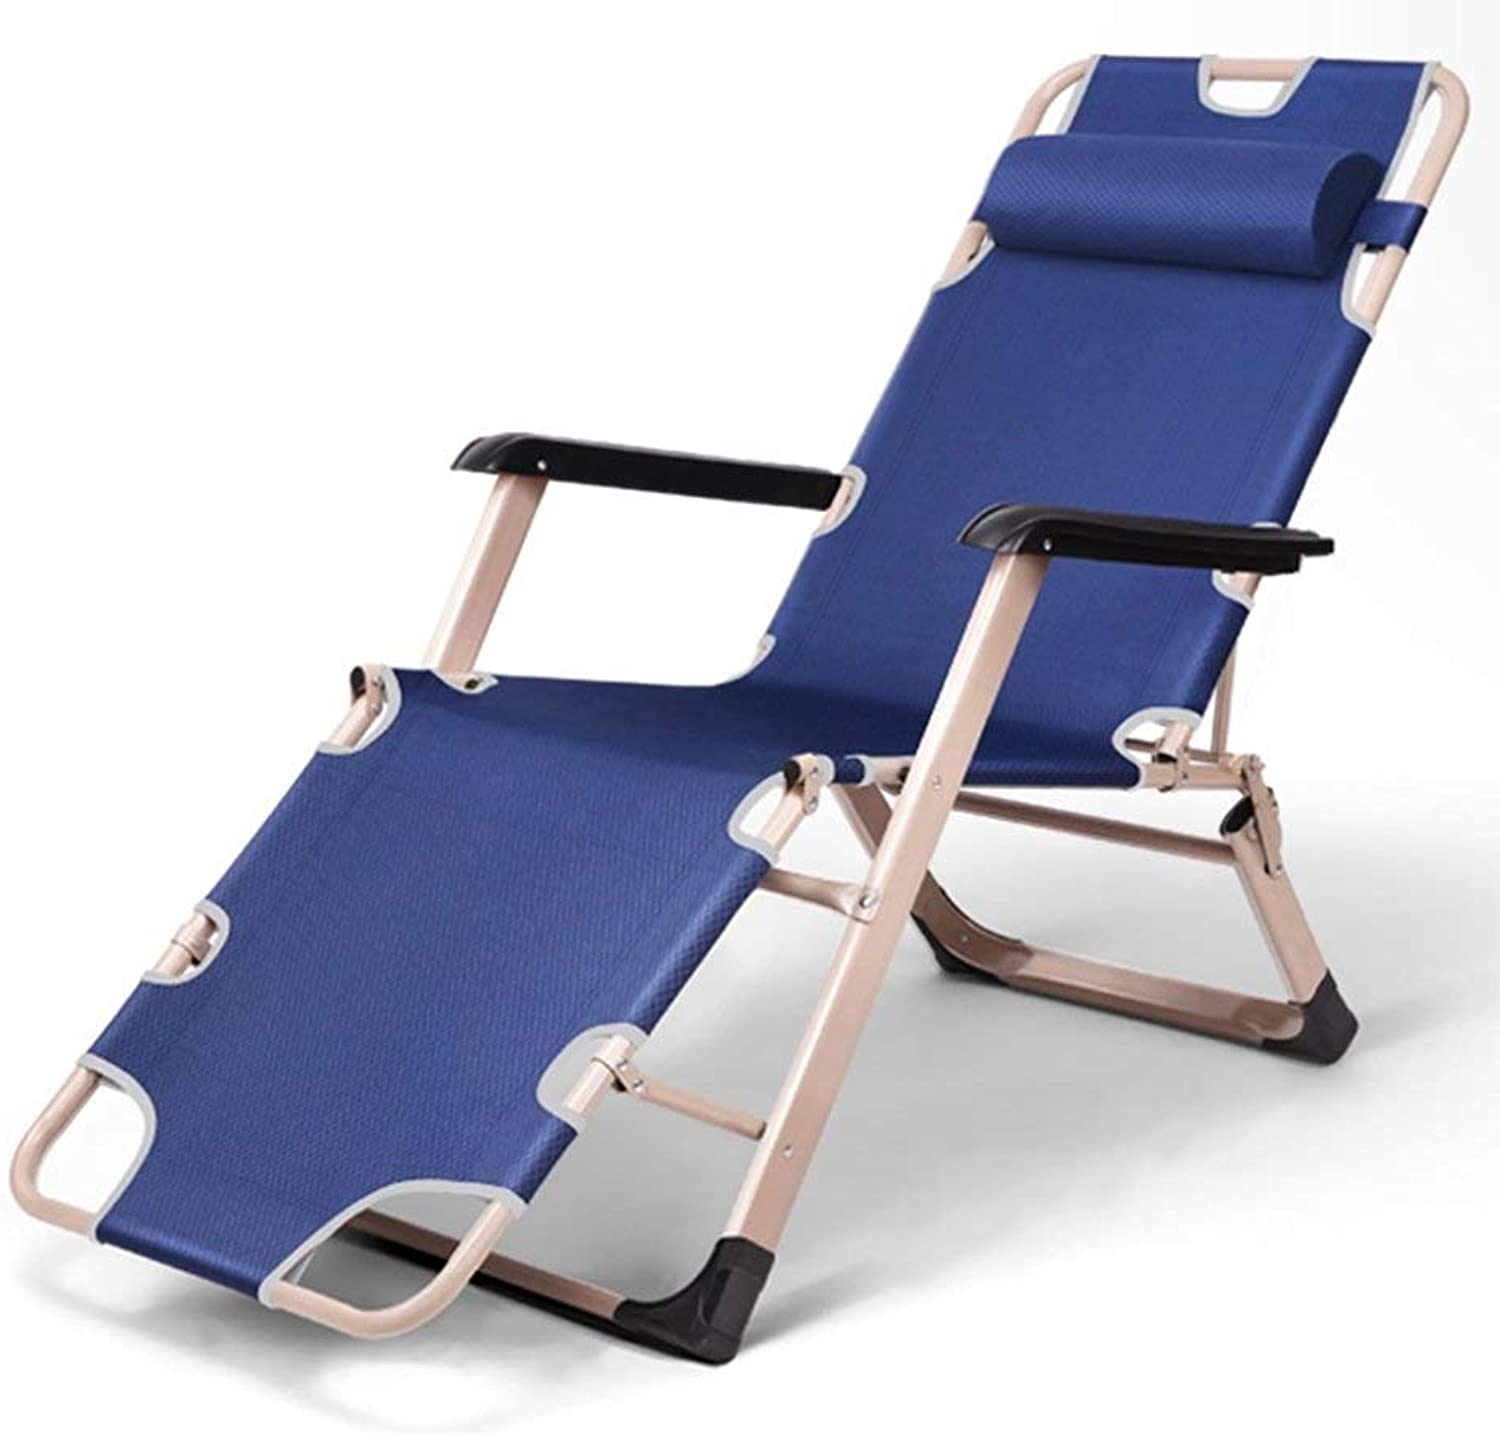 RMJAI Chairs Folding Chair Lunch Break Nap Bed Back Lazy Leisure Beach Home MultiFunction Chair Folding Chair Beach Chair